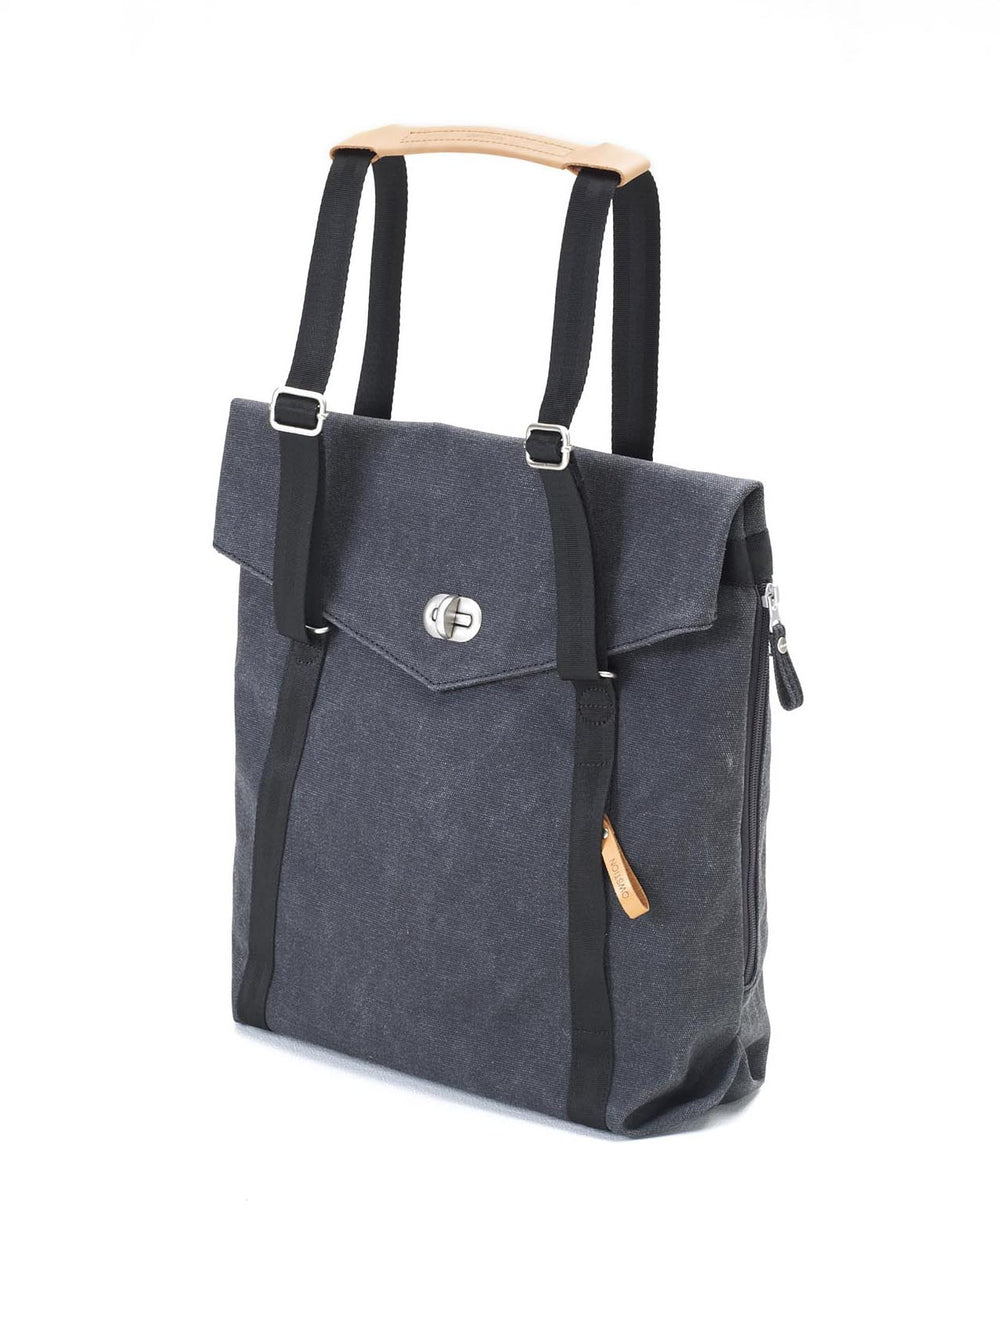 twist lock to access the main compartment of Qwstion Tote Washed Black